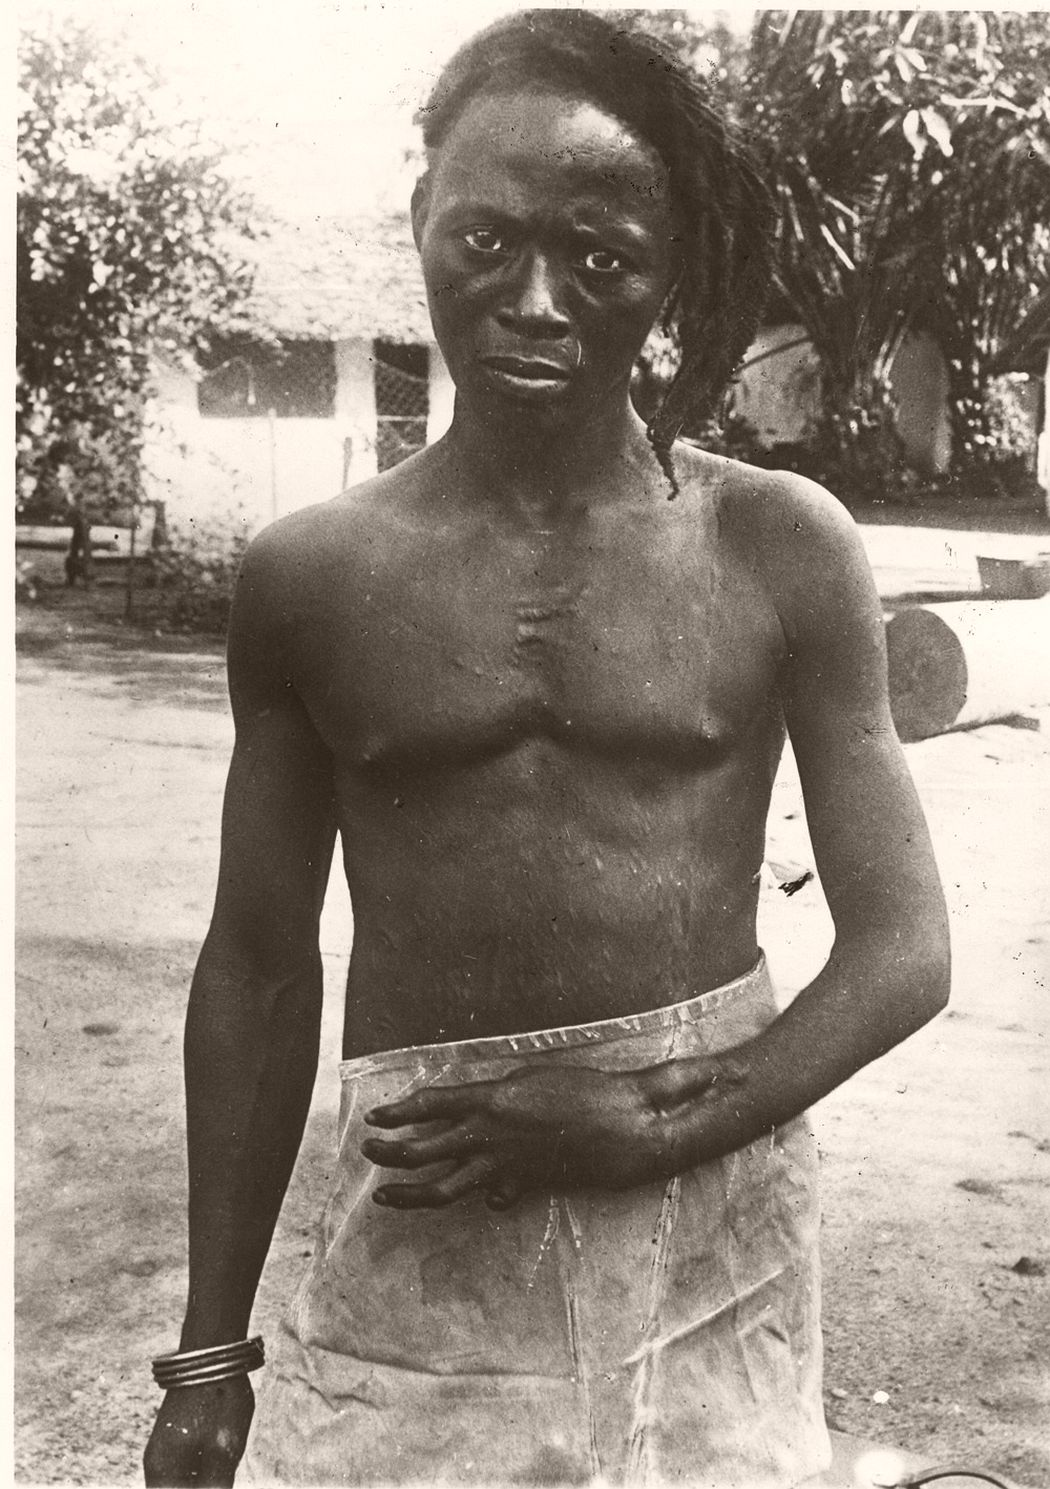 Lomboto shot in wrist and hand by a rubber concession sentry and permanently disabled as a result, early 1900s copy. Copyright Anti-Slavery International and Autograph ABP.